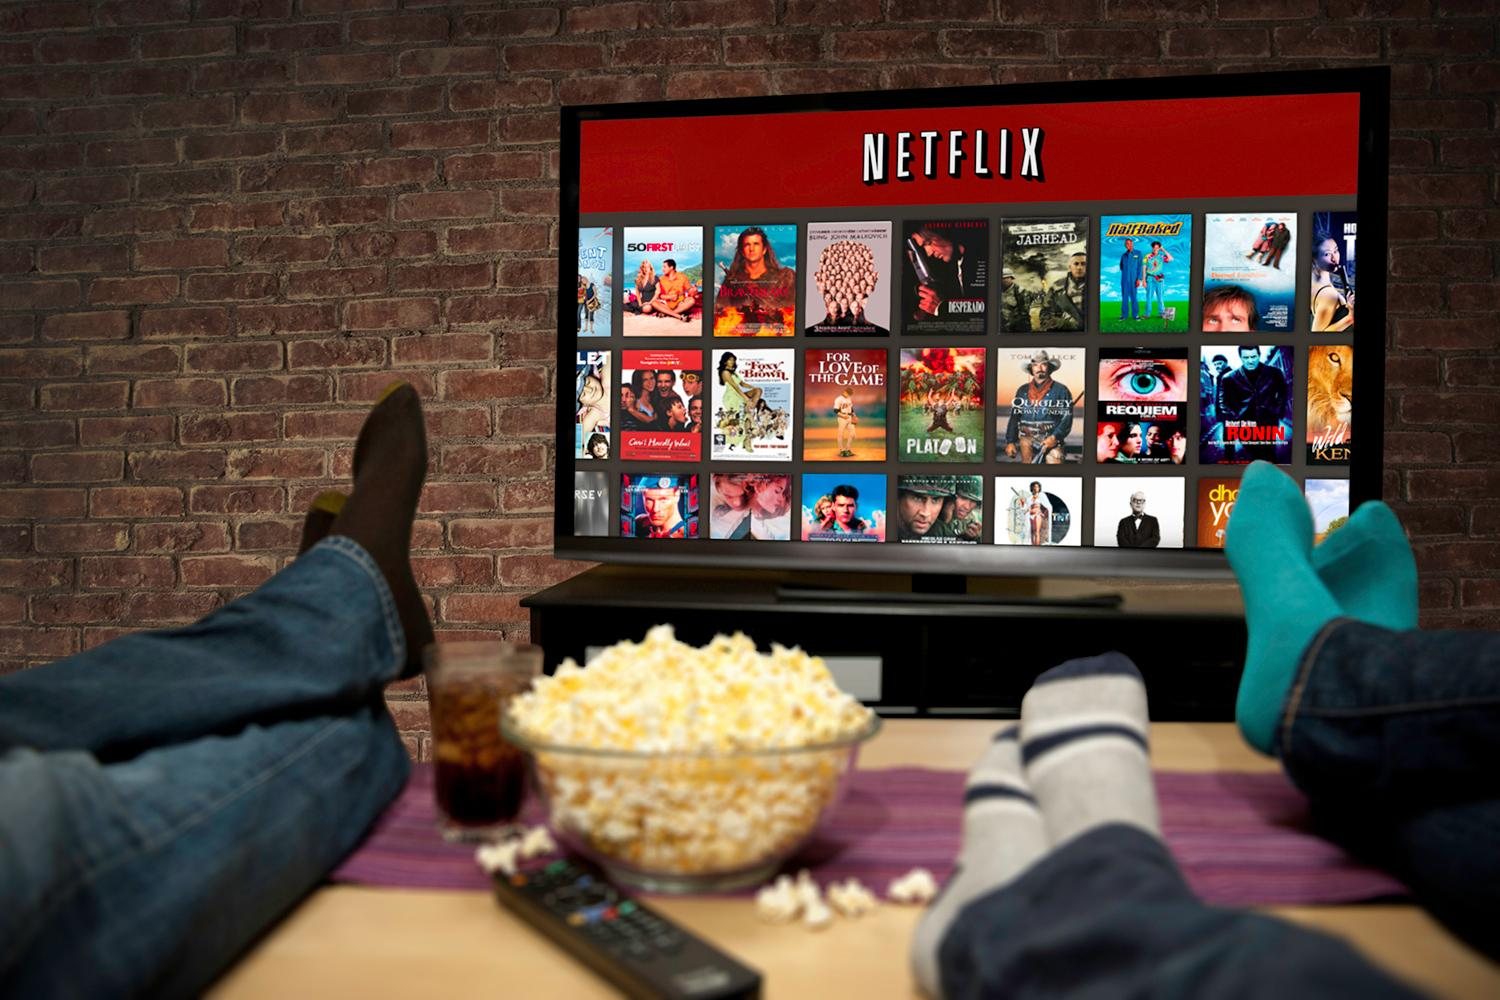 netflix movies expiring jan 2014 Netflix CEO Says Traditional Television Will Be Dead In 16 Years